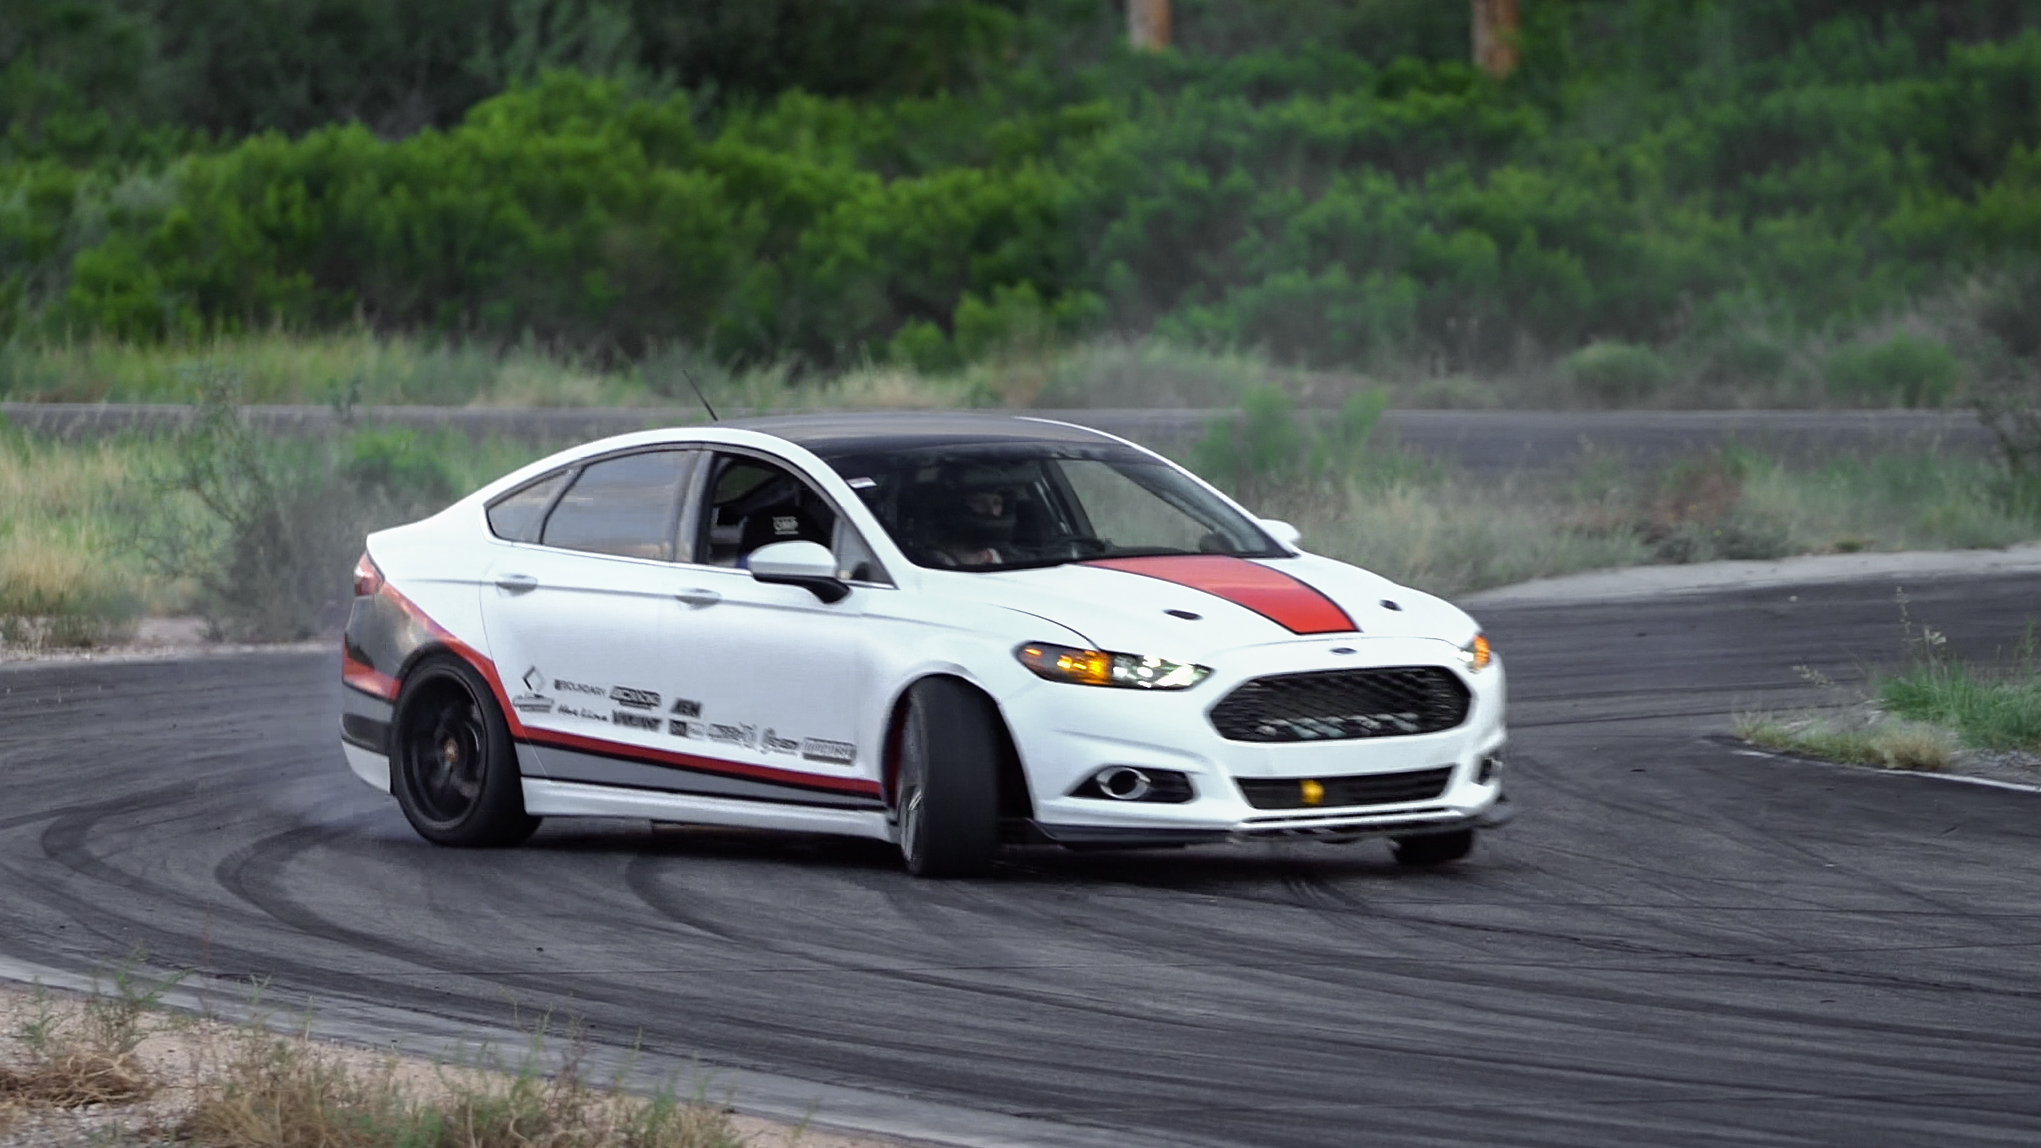 Coyote powered RWD Ford Fusion dubbed the four-door Mustang   Rebecca Nguyen photos